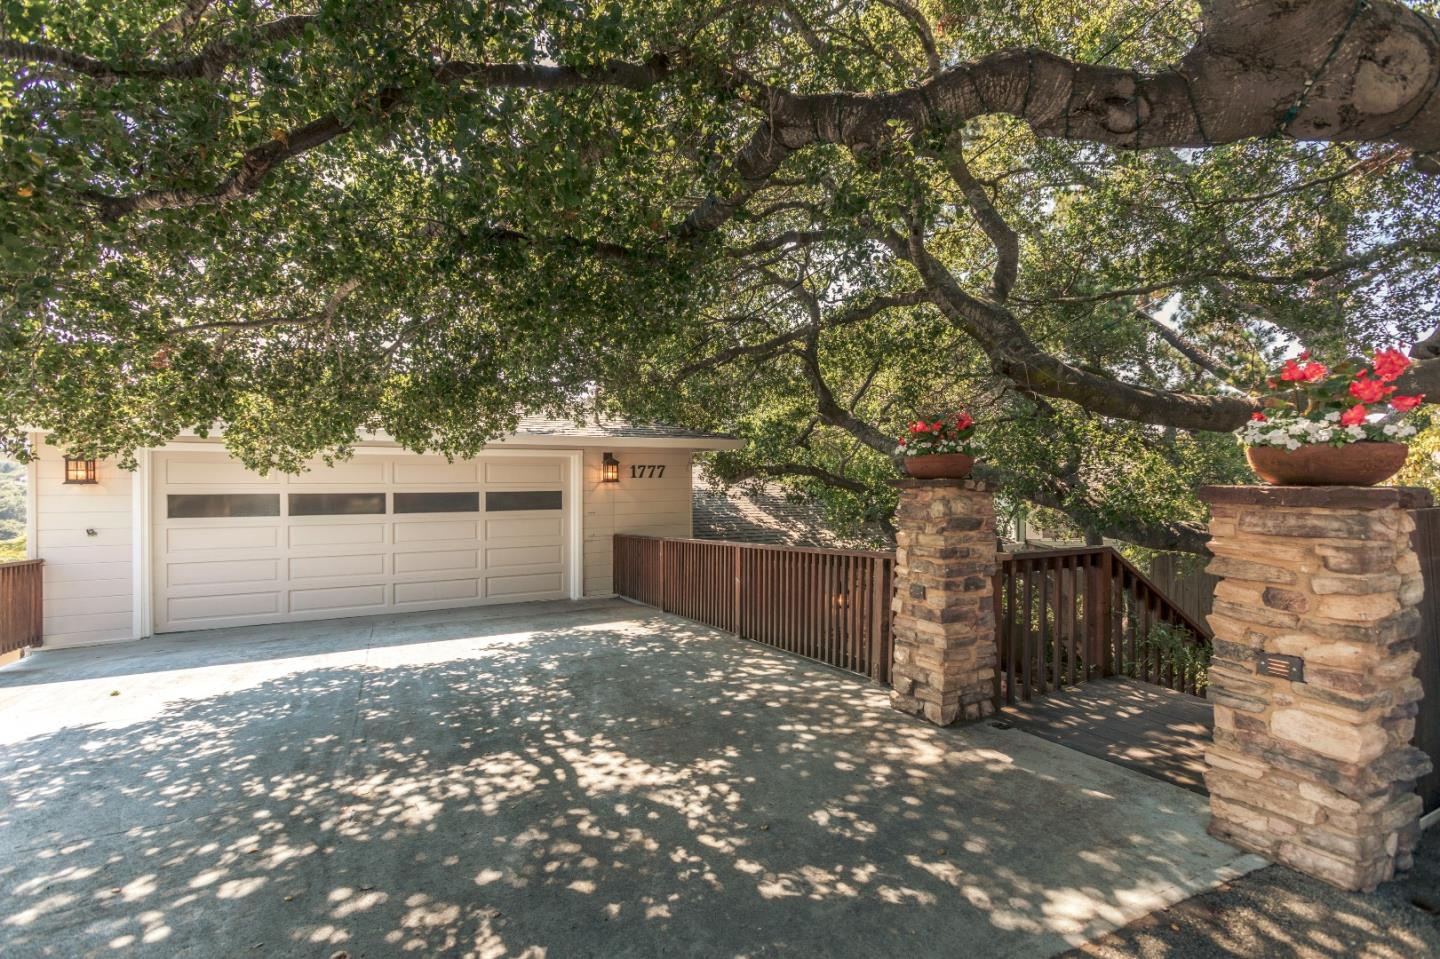 Single Family Home for Sale at 1777 Valley View Avenue Belmont, California 94002 United States